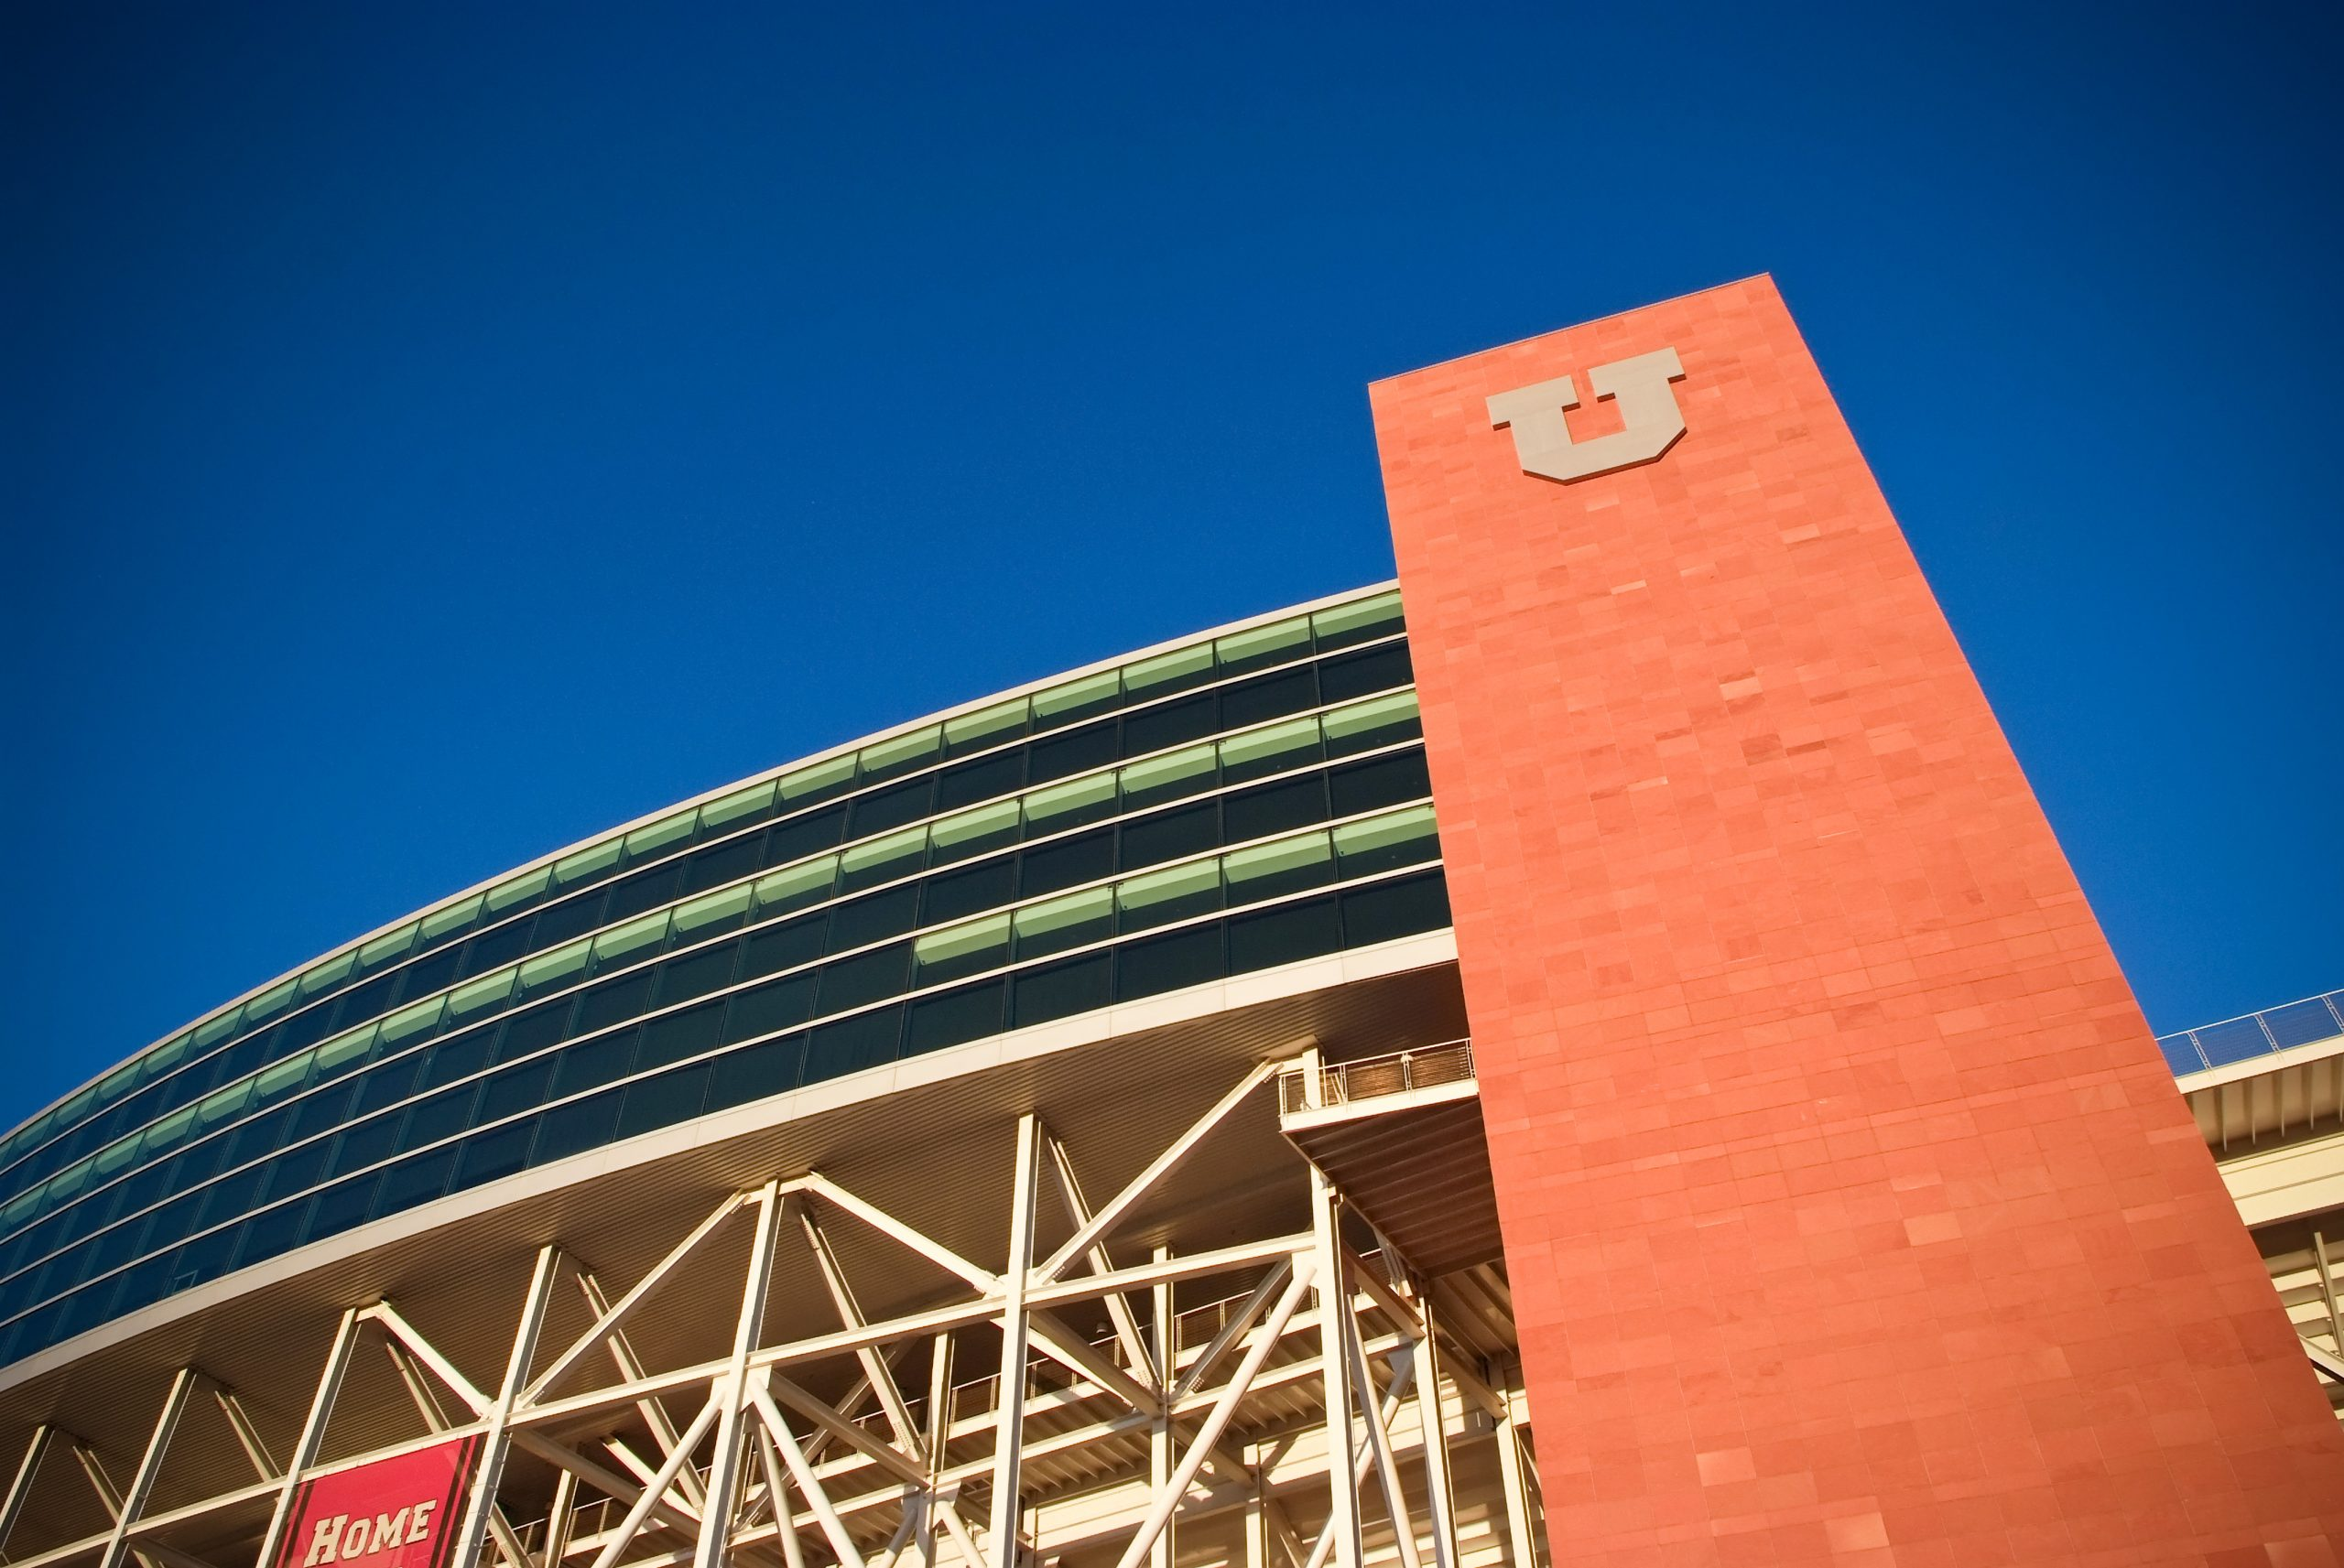 The Tower at Rice-Eccles Stadium, home of the Utah Utes and site of the 2002 Winter Olympics opening and closing ceremonies